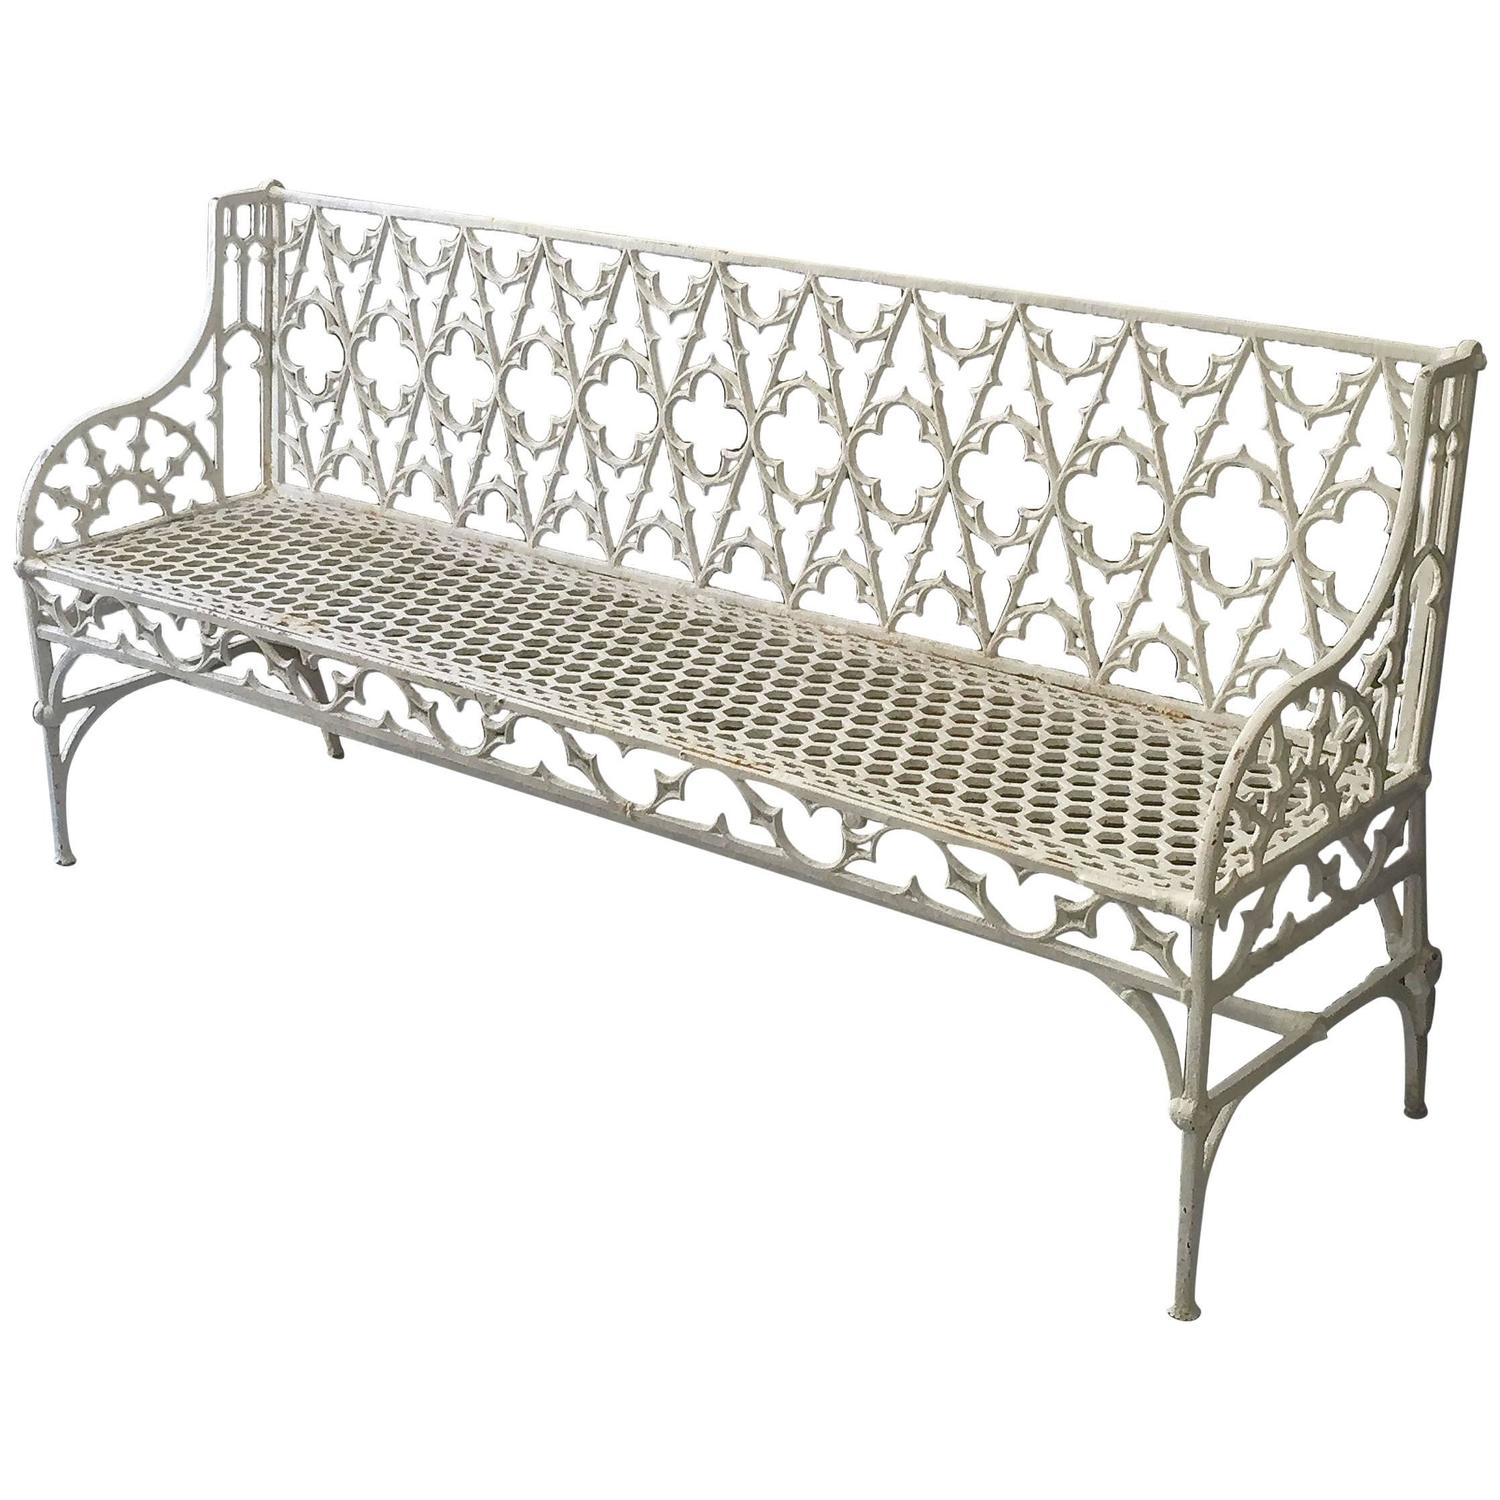 Large french val d 39 osne cast iron garden bench at 1stdibs French metal garden furniture